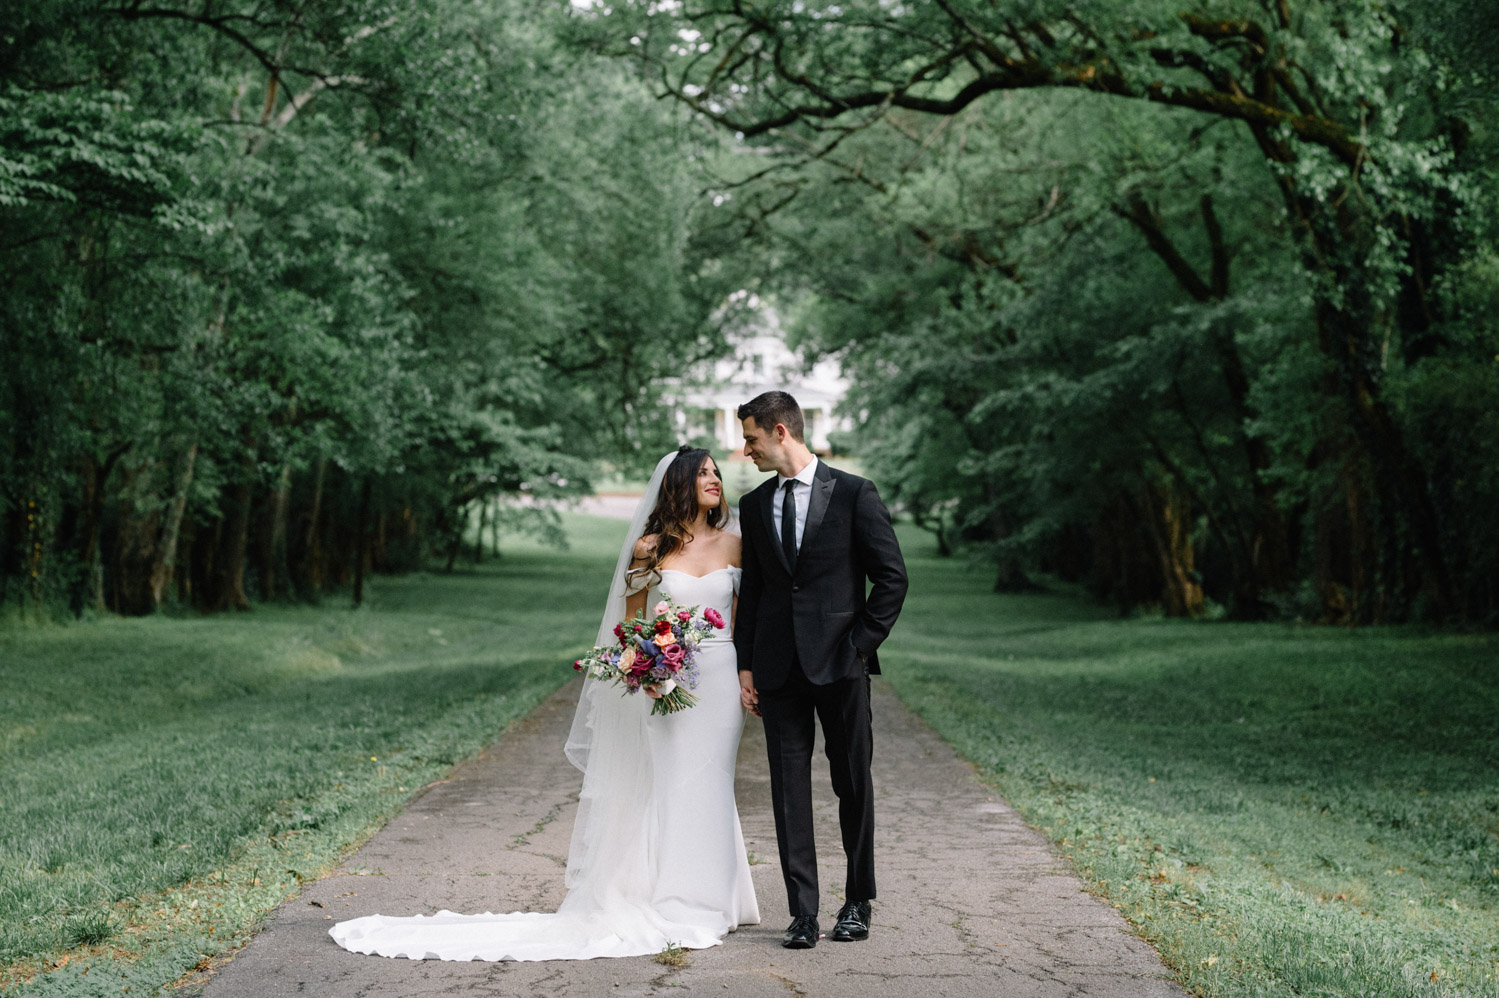 Maple Grove Estate, restored to it's original beauty offers a Luxury wedding venue to couples seeking an elegant atmosphere for their nuptuals.